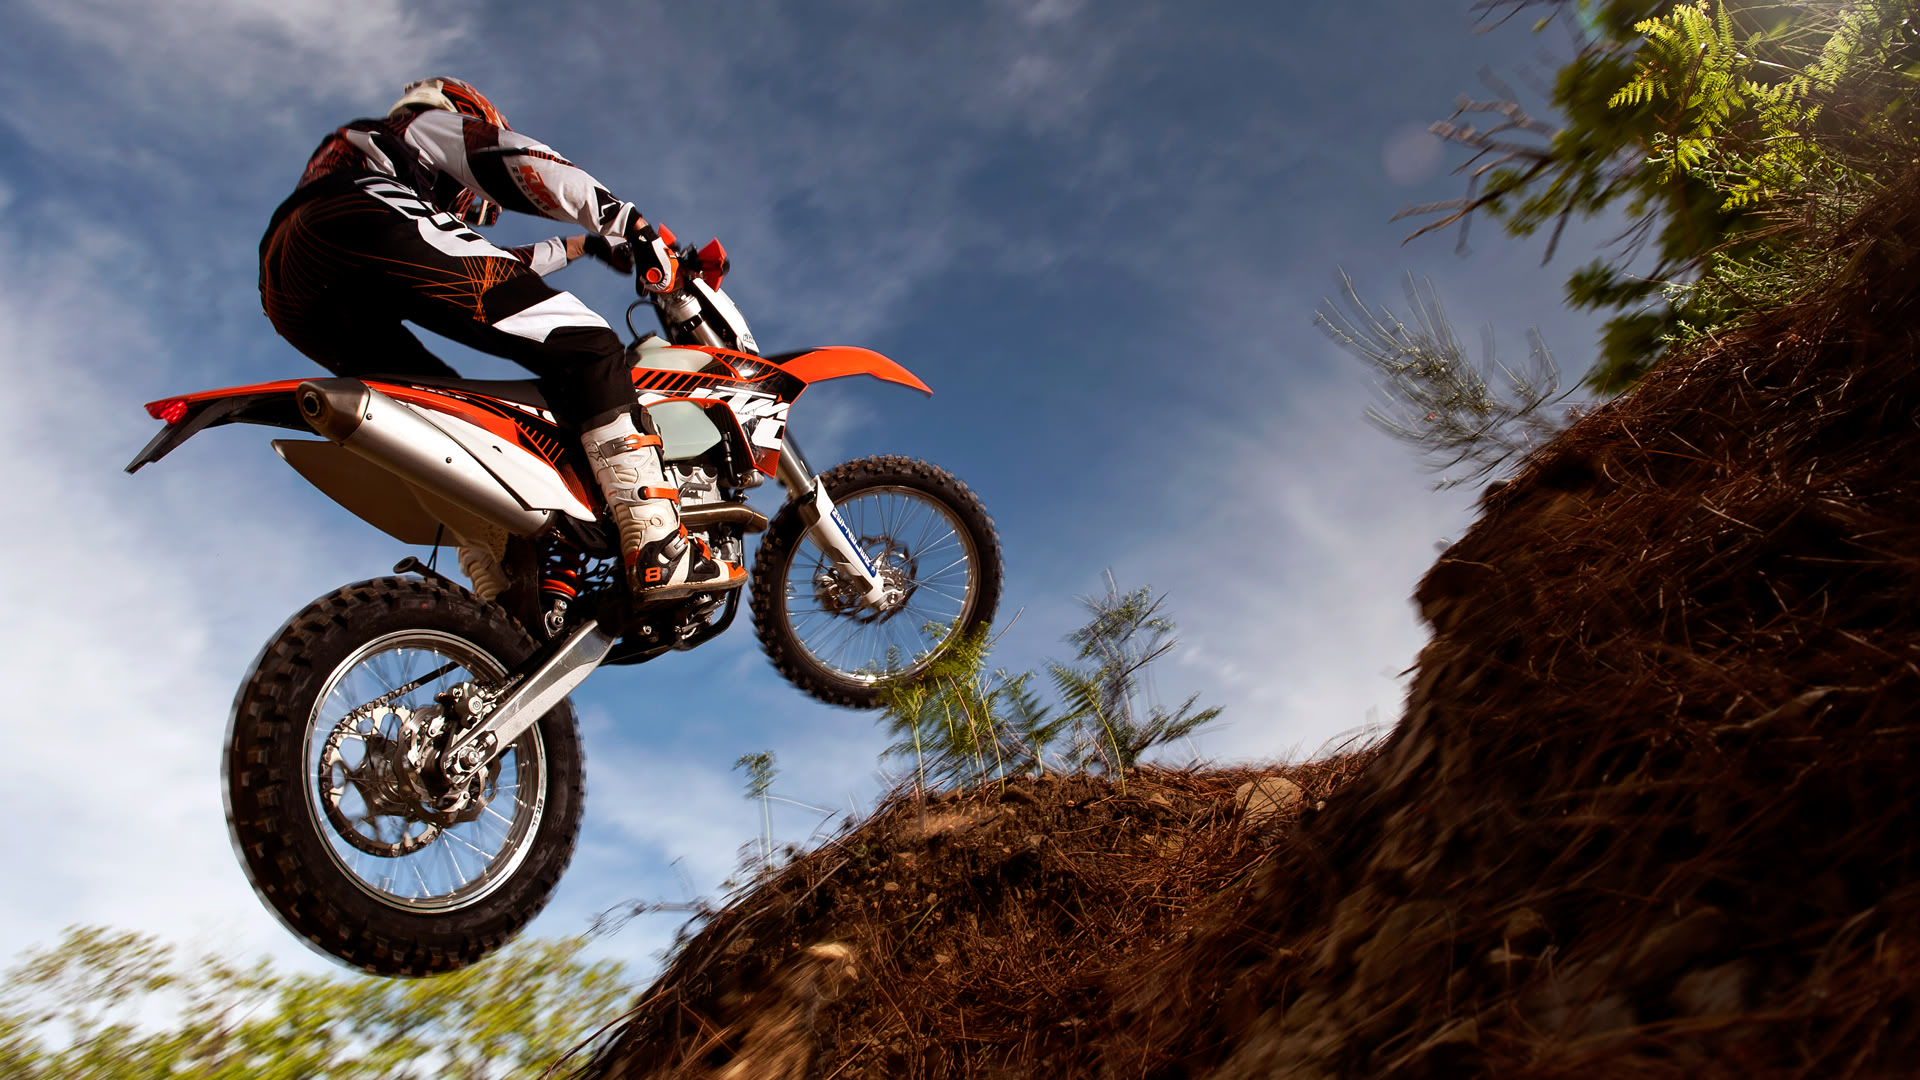 ktm wallpaper hd 48680